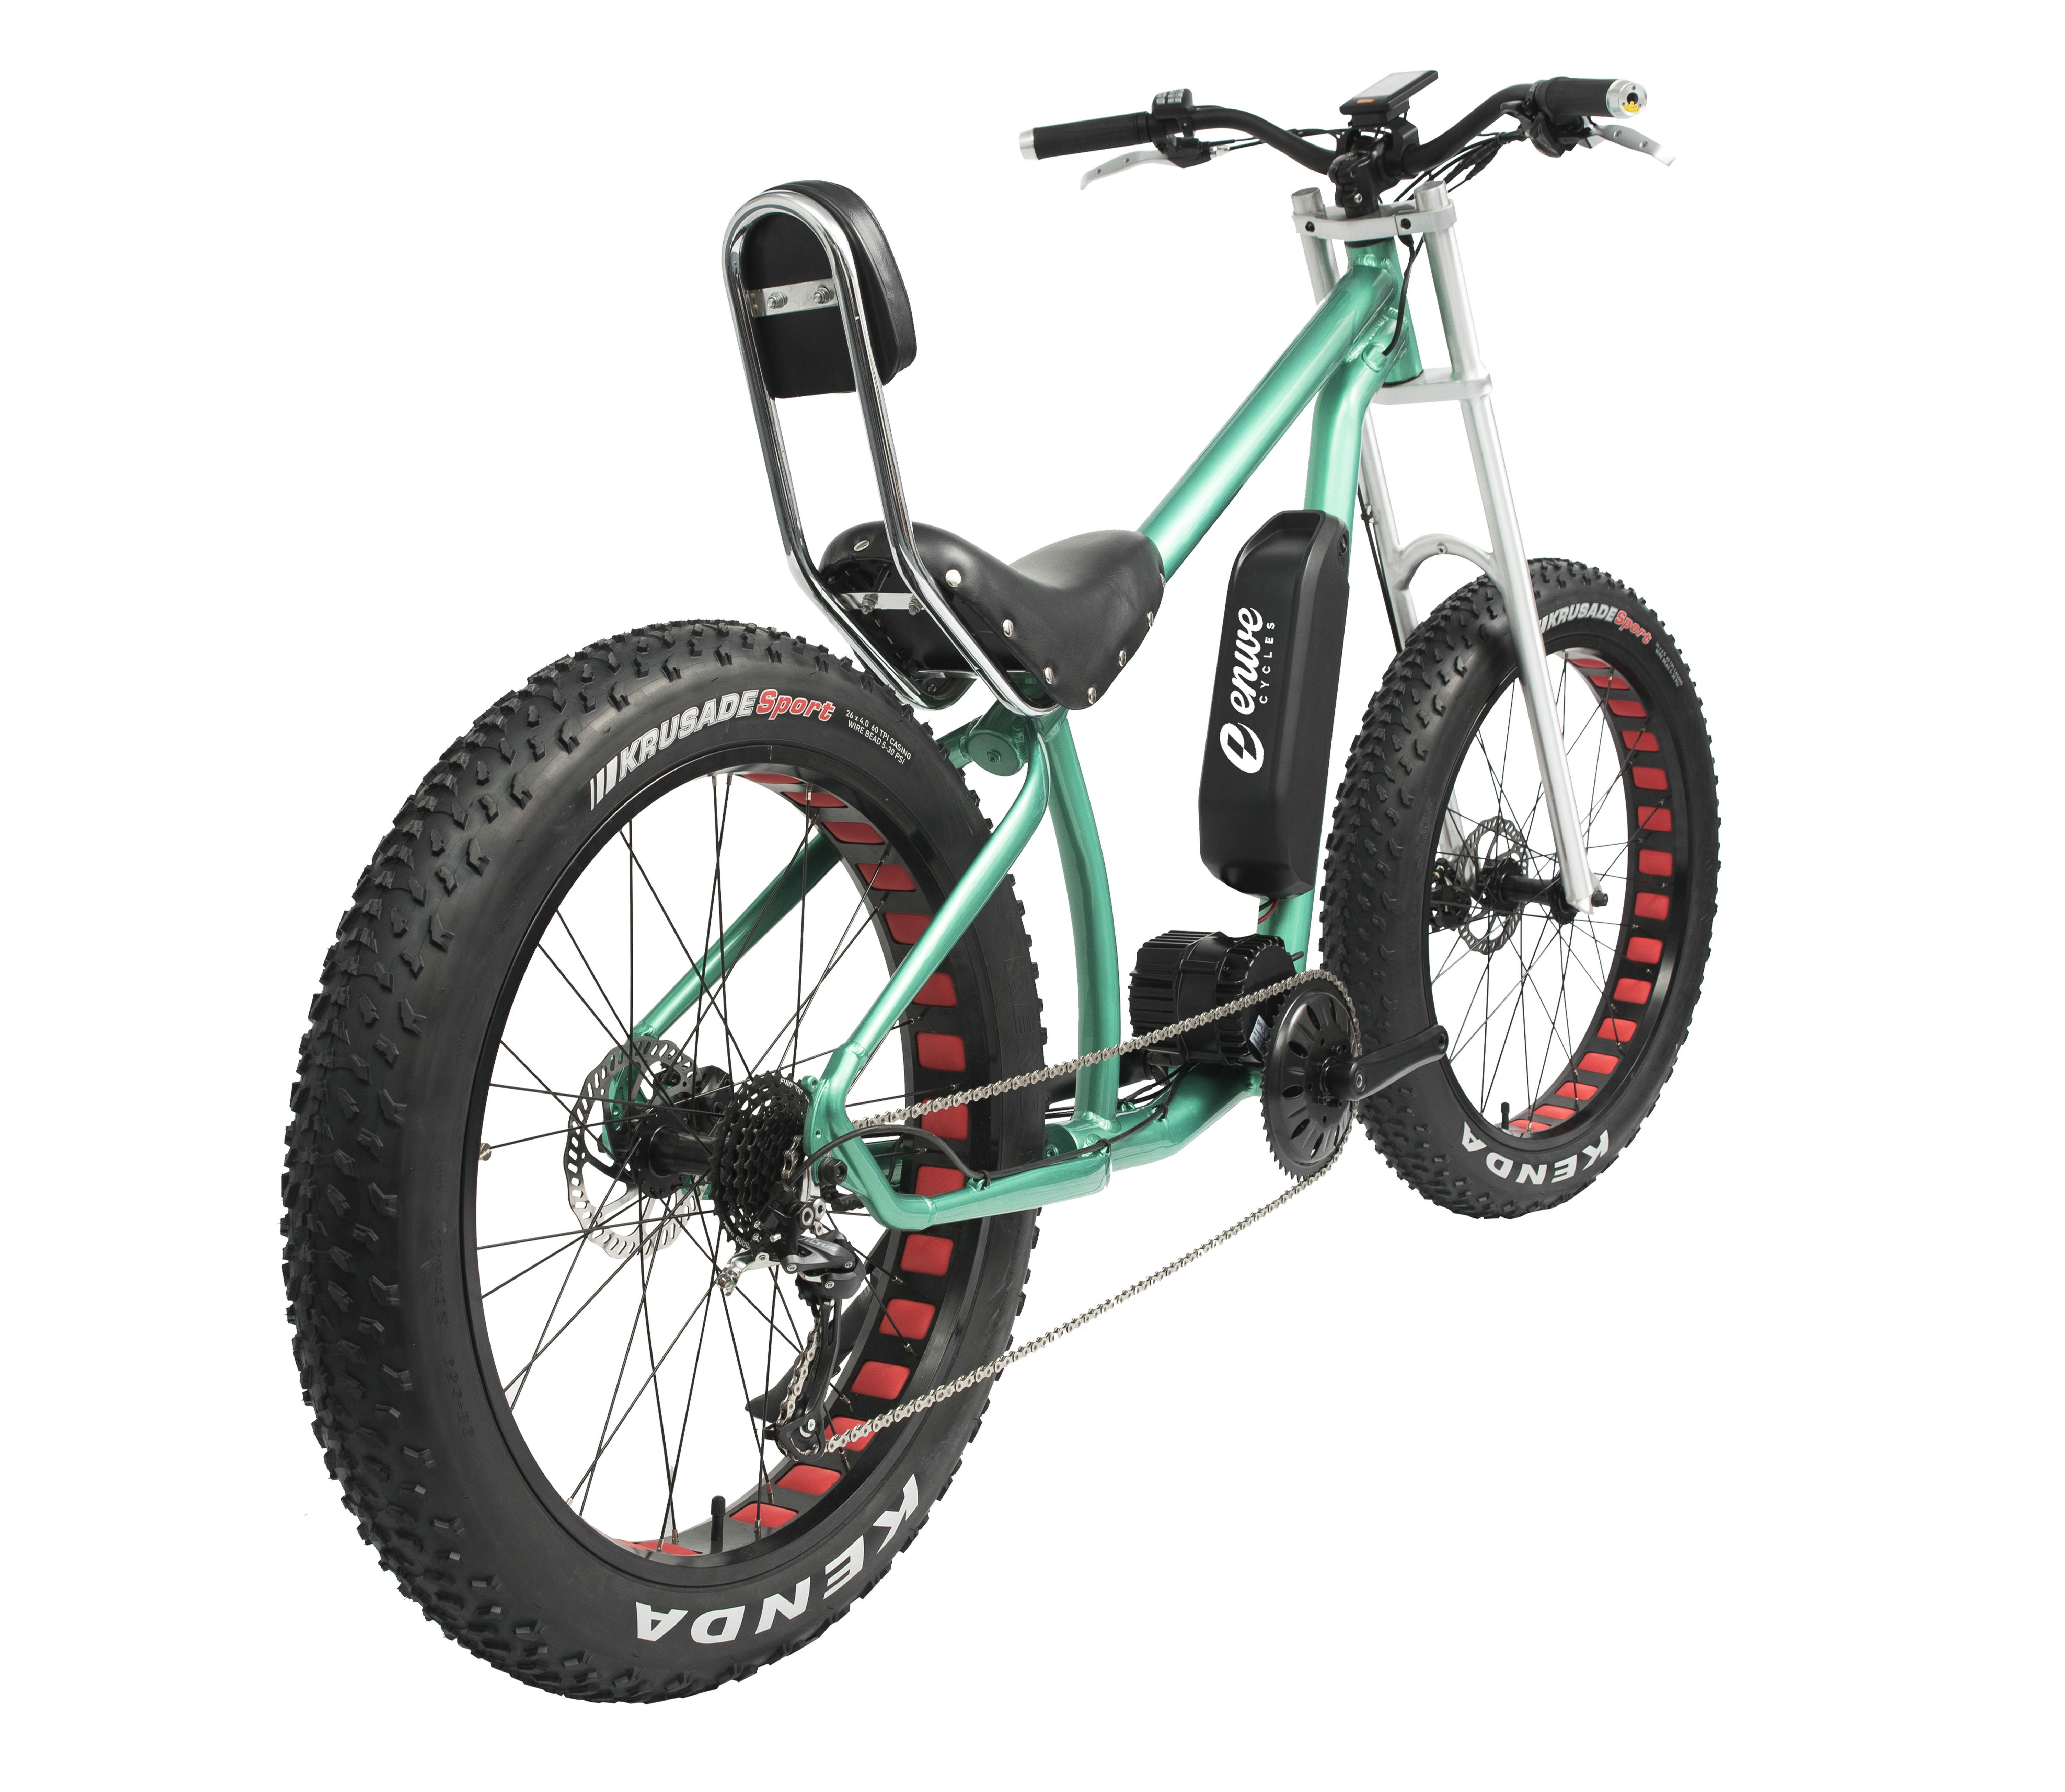 China Electric Bike, China Electric Bike Manufacturers and Suppliers